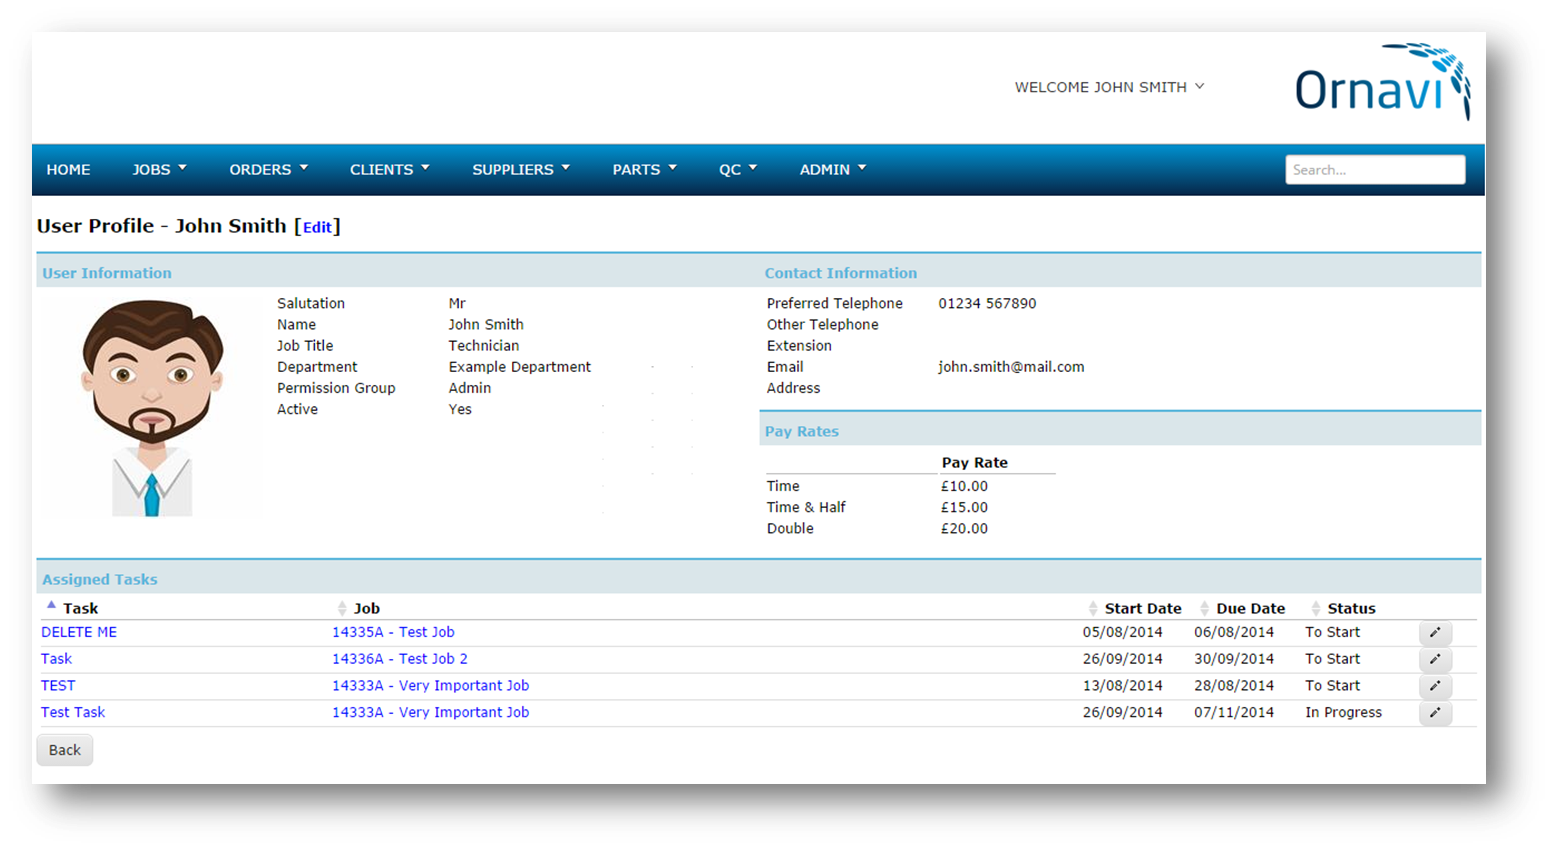 Ornavi Screenshot - User Profile